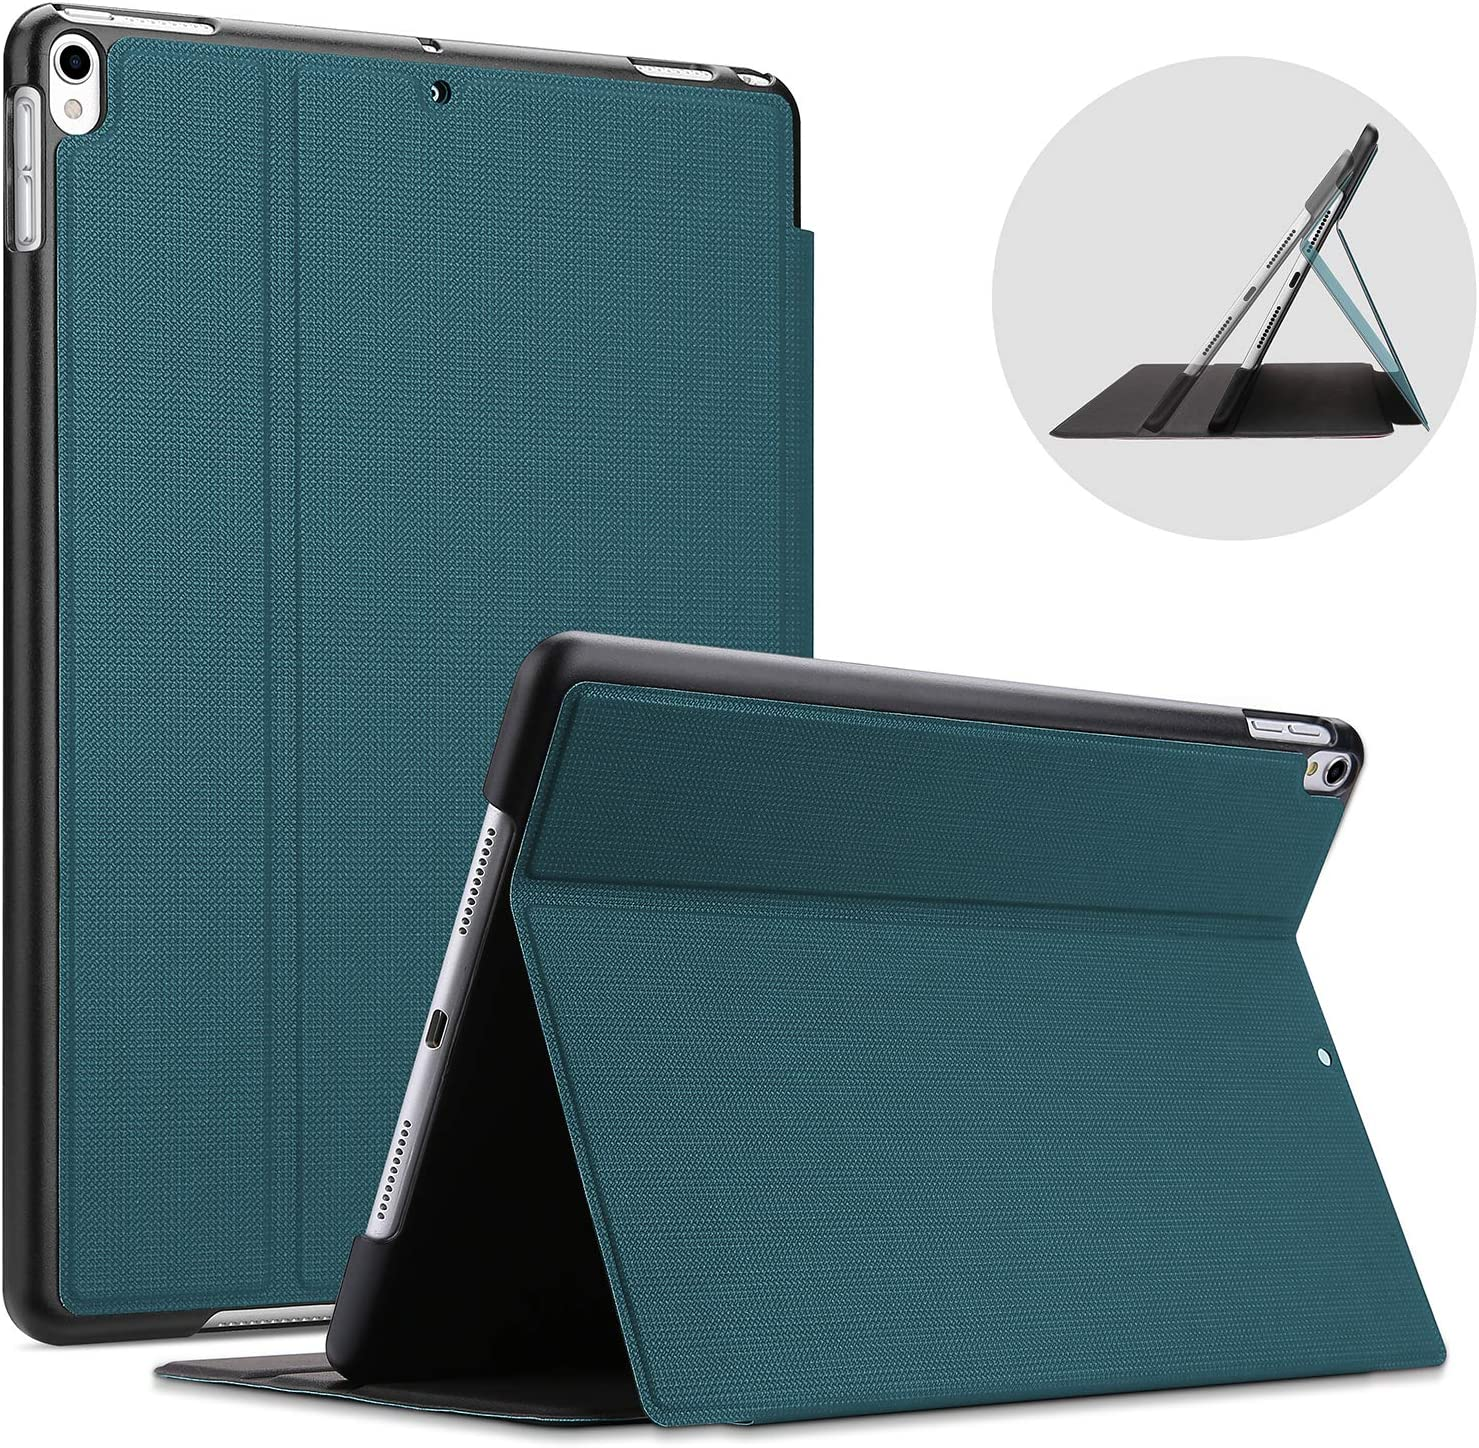 "ProCase iPad Air 3 10.5"" 2019 / iPad Pro 10.5 2017 Case, Slim Stand Protective Folio Case Smart Cover for iPad Air 10.5"" (3rd Gen) 2019 / iPad Pro 10.5"" 2017 -Teal"